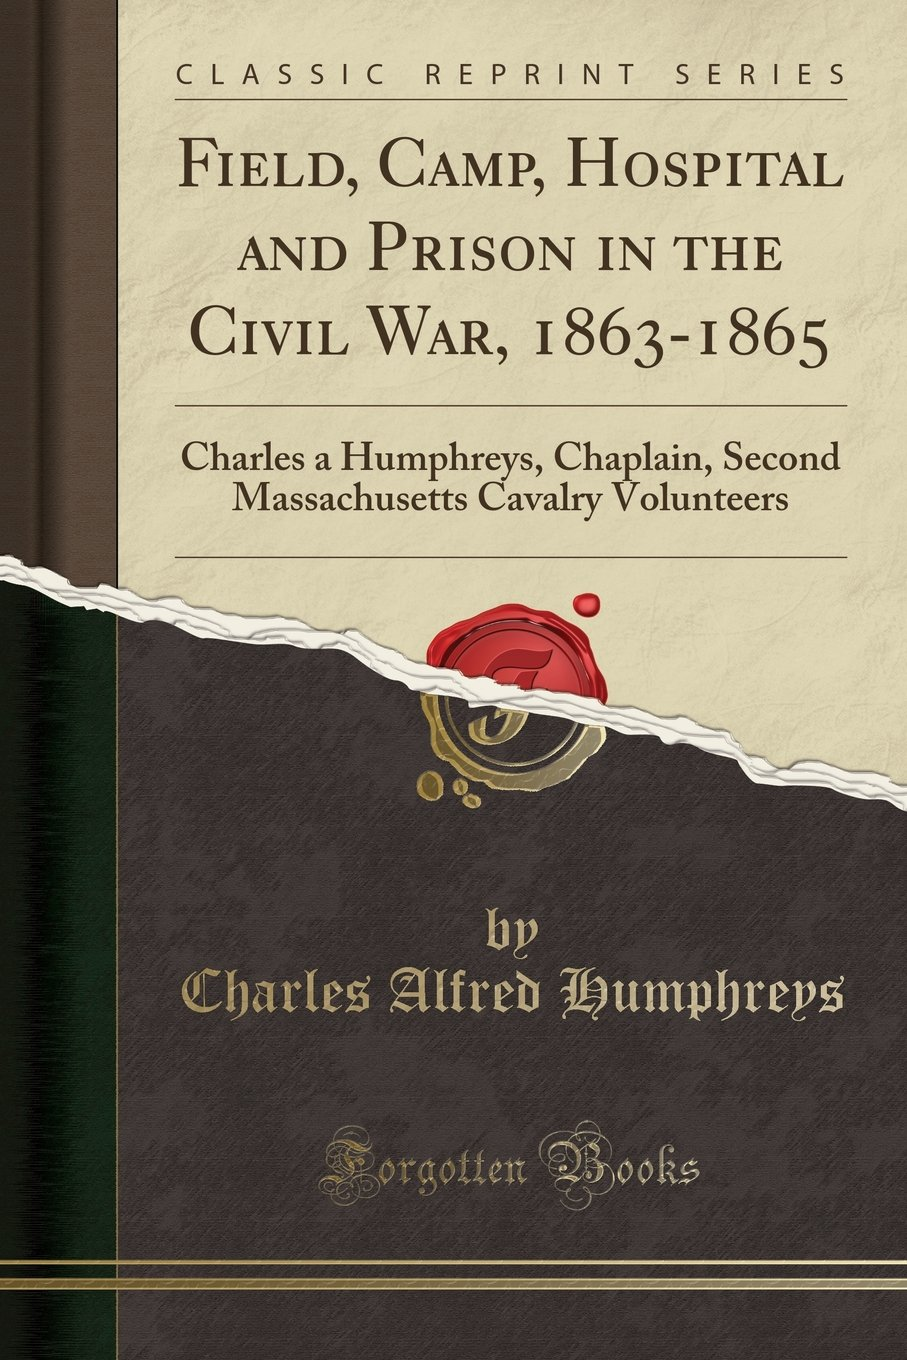 Field, Camp, Hospital and Prison in the Civil War, 1863-1865: Charles a Humphreys, Chaplain, Second Massachusetts Cavalry Volunteers (Classic Reprint)